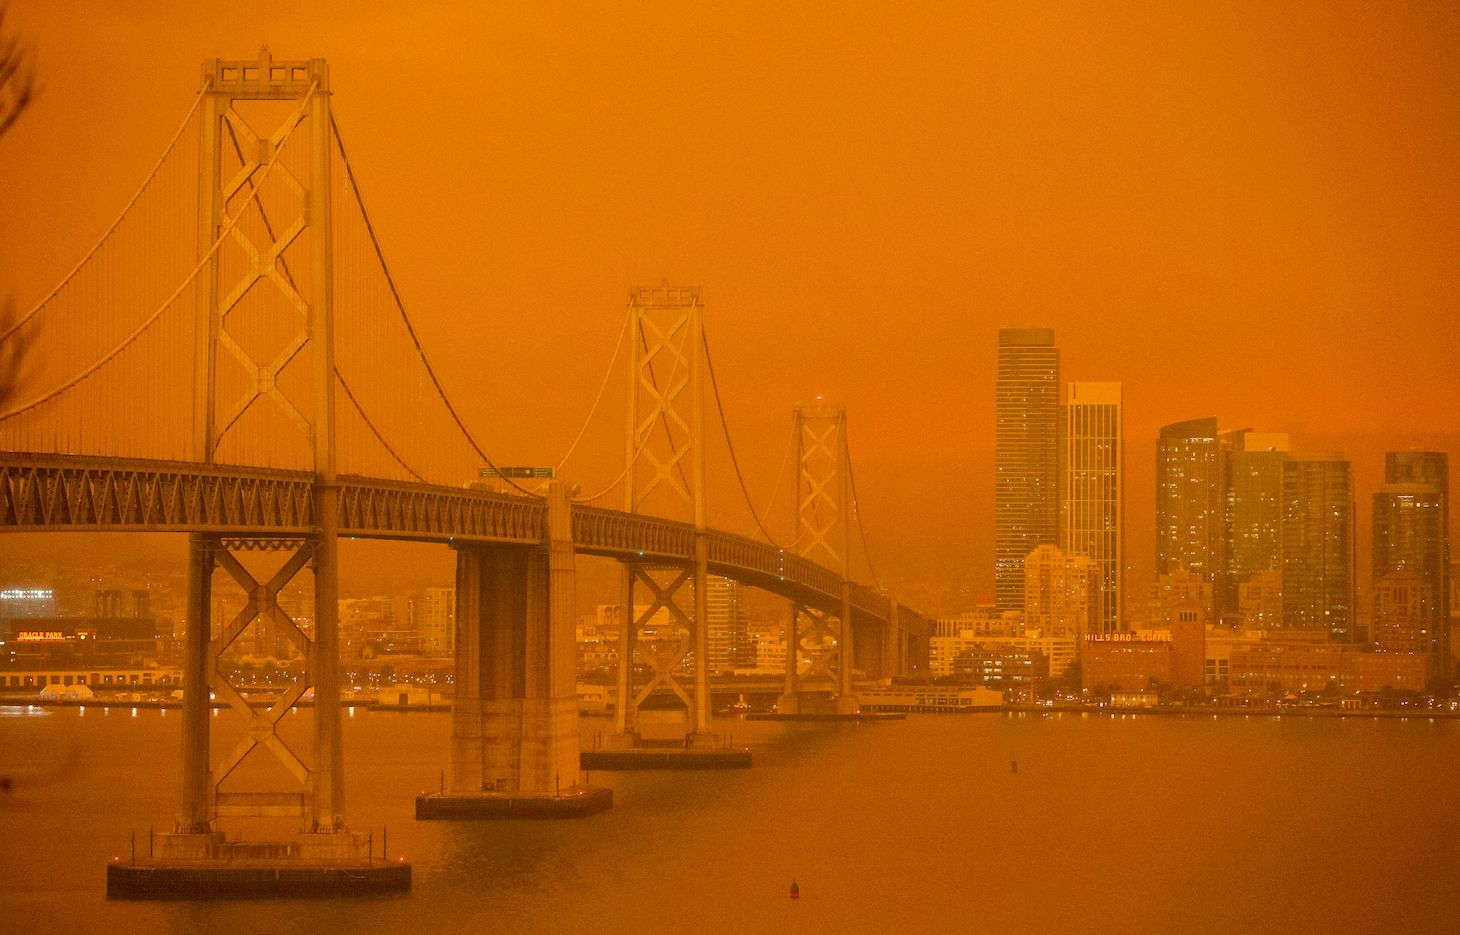 The San Francisco skyling obscured by thick smoke.